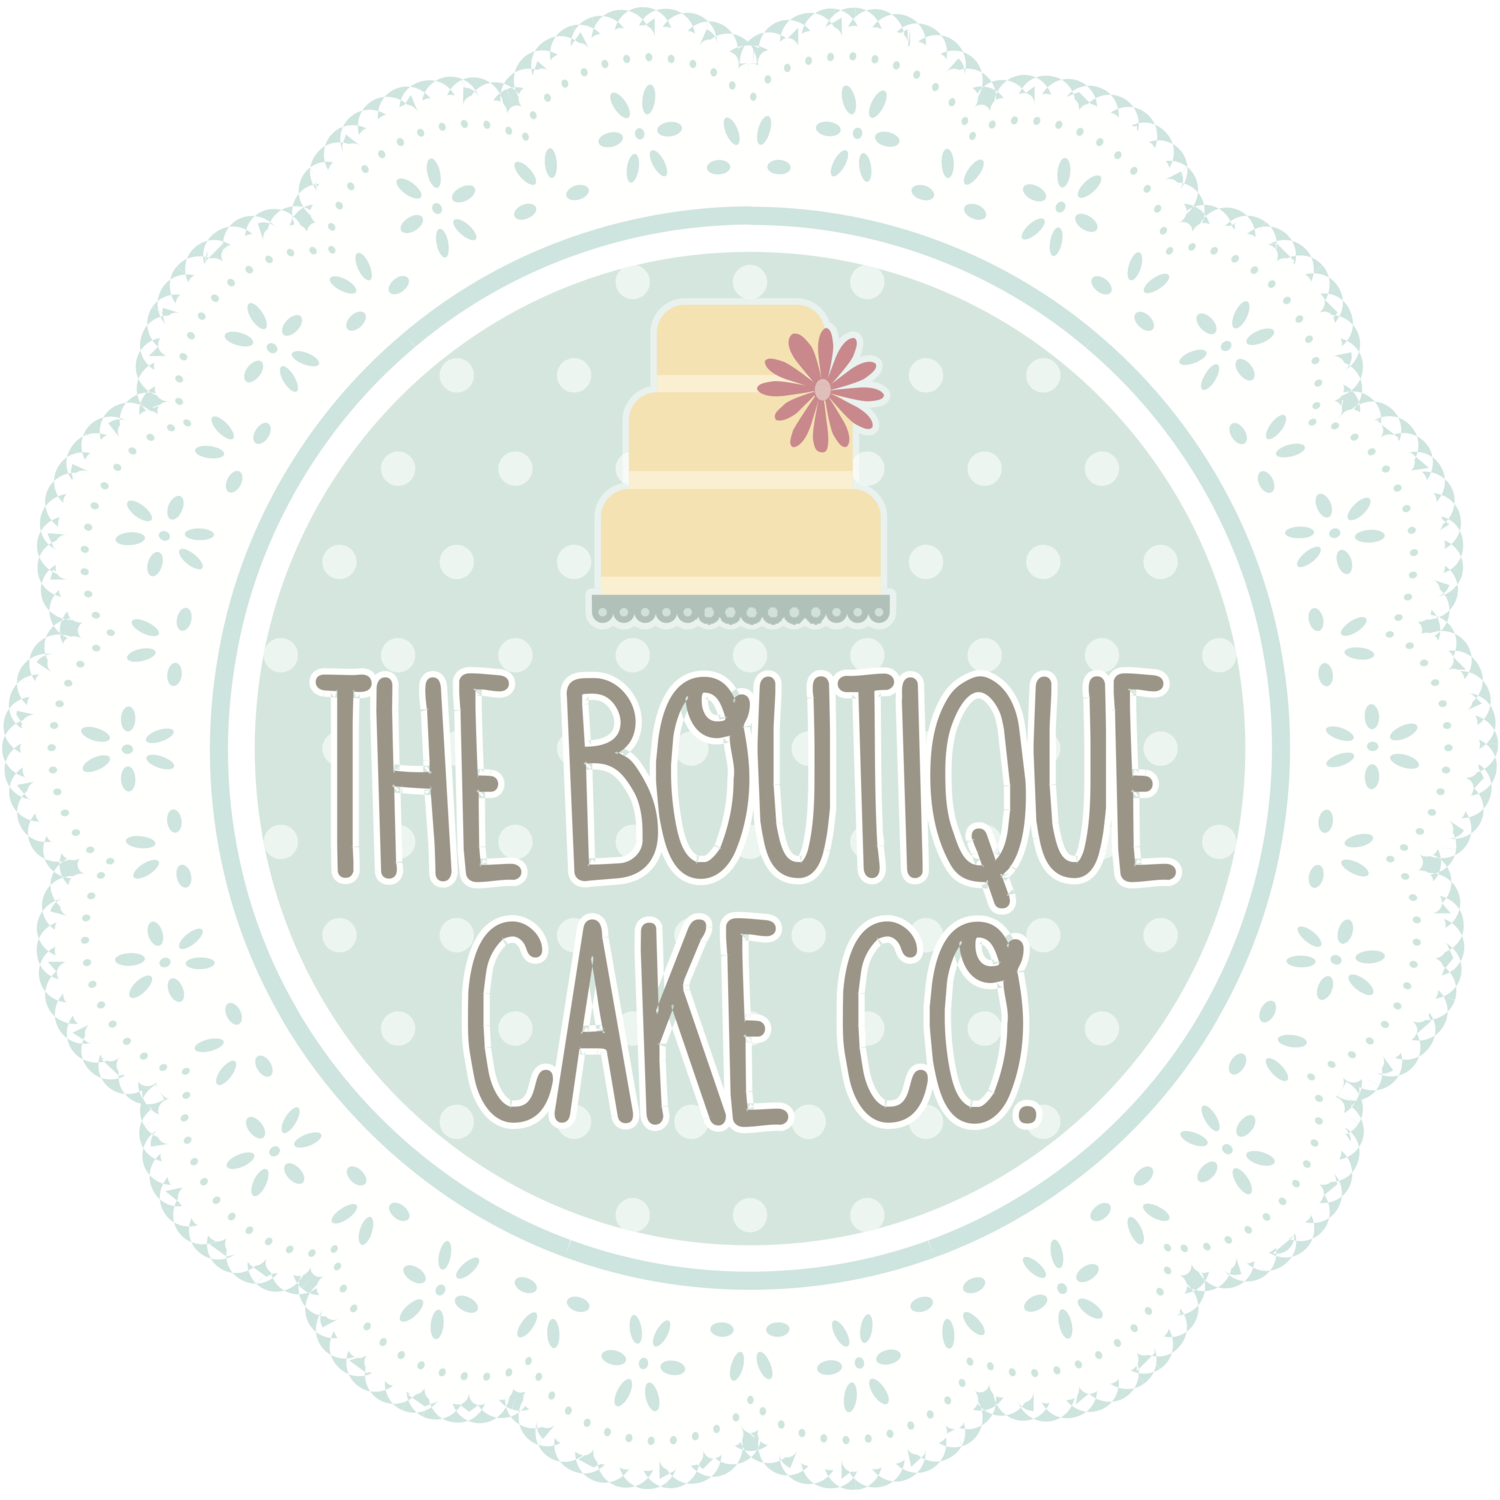 The Boutique Cake Company